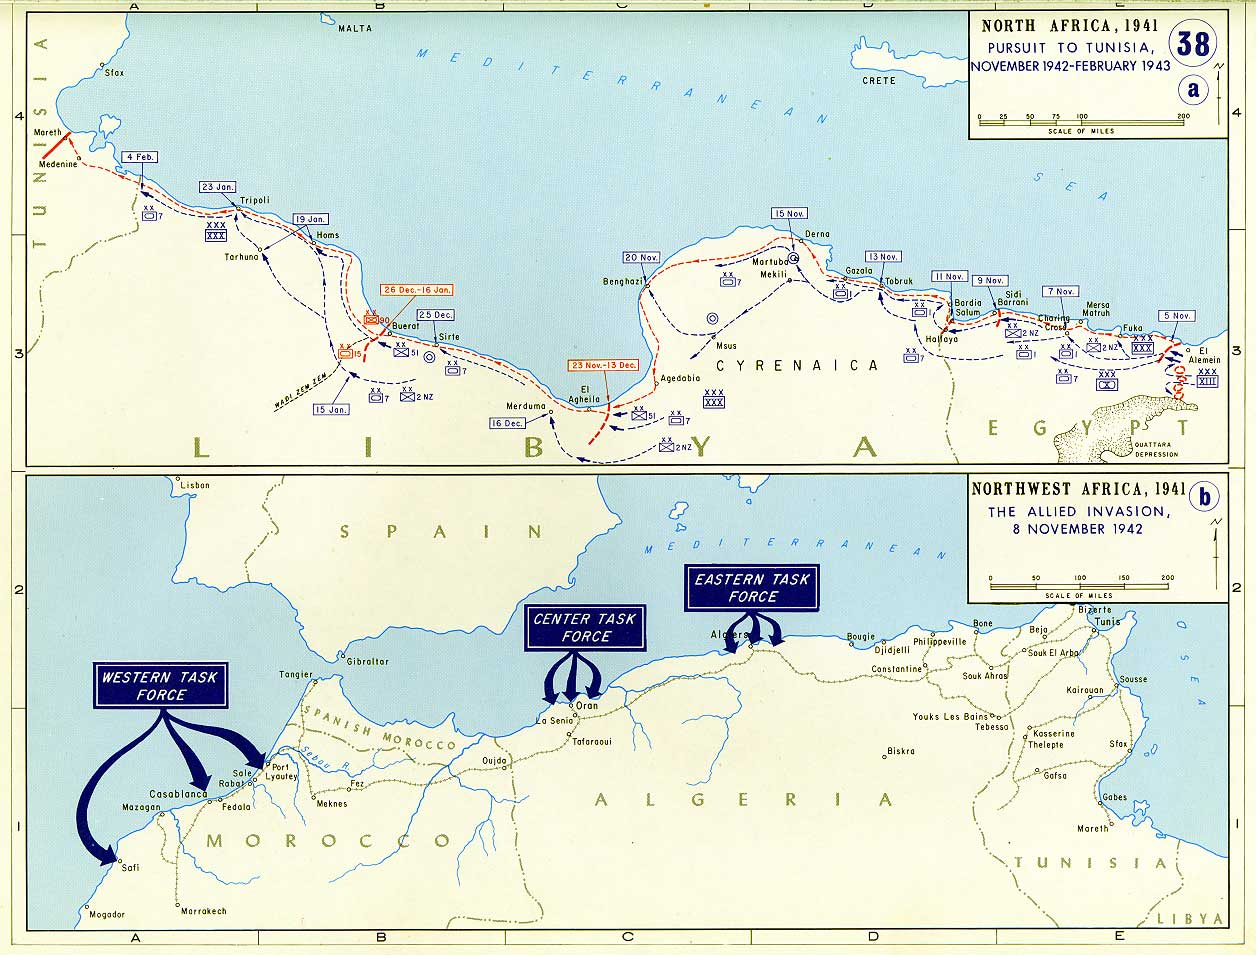 Map of Allied Invasion of Northwest Africa 19421943